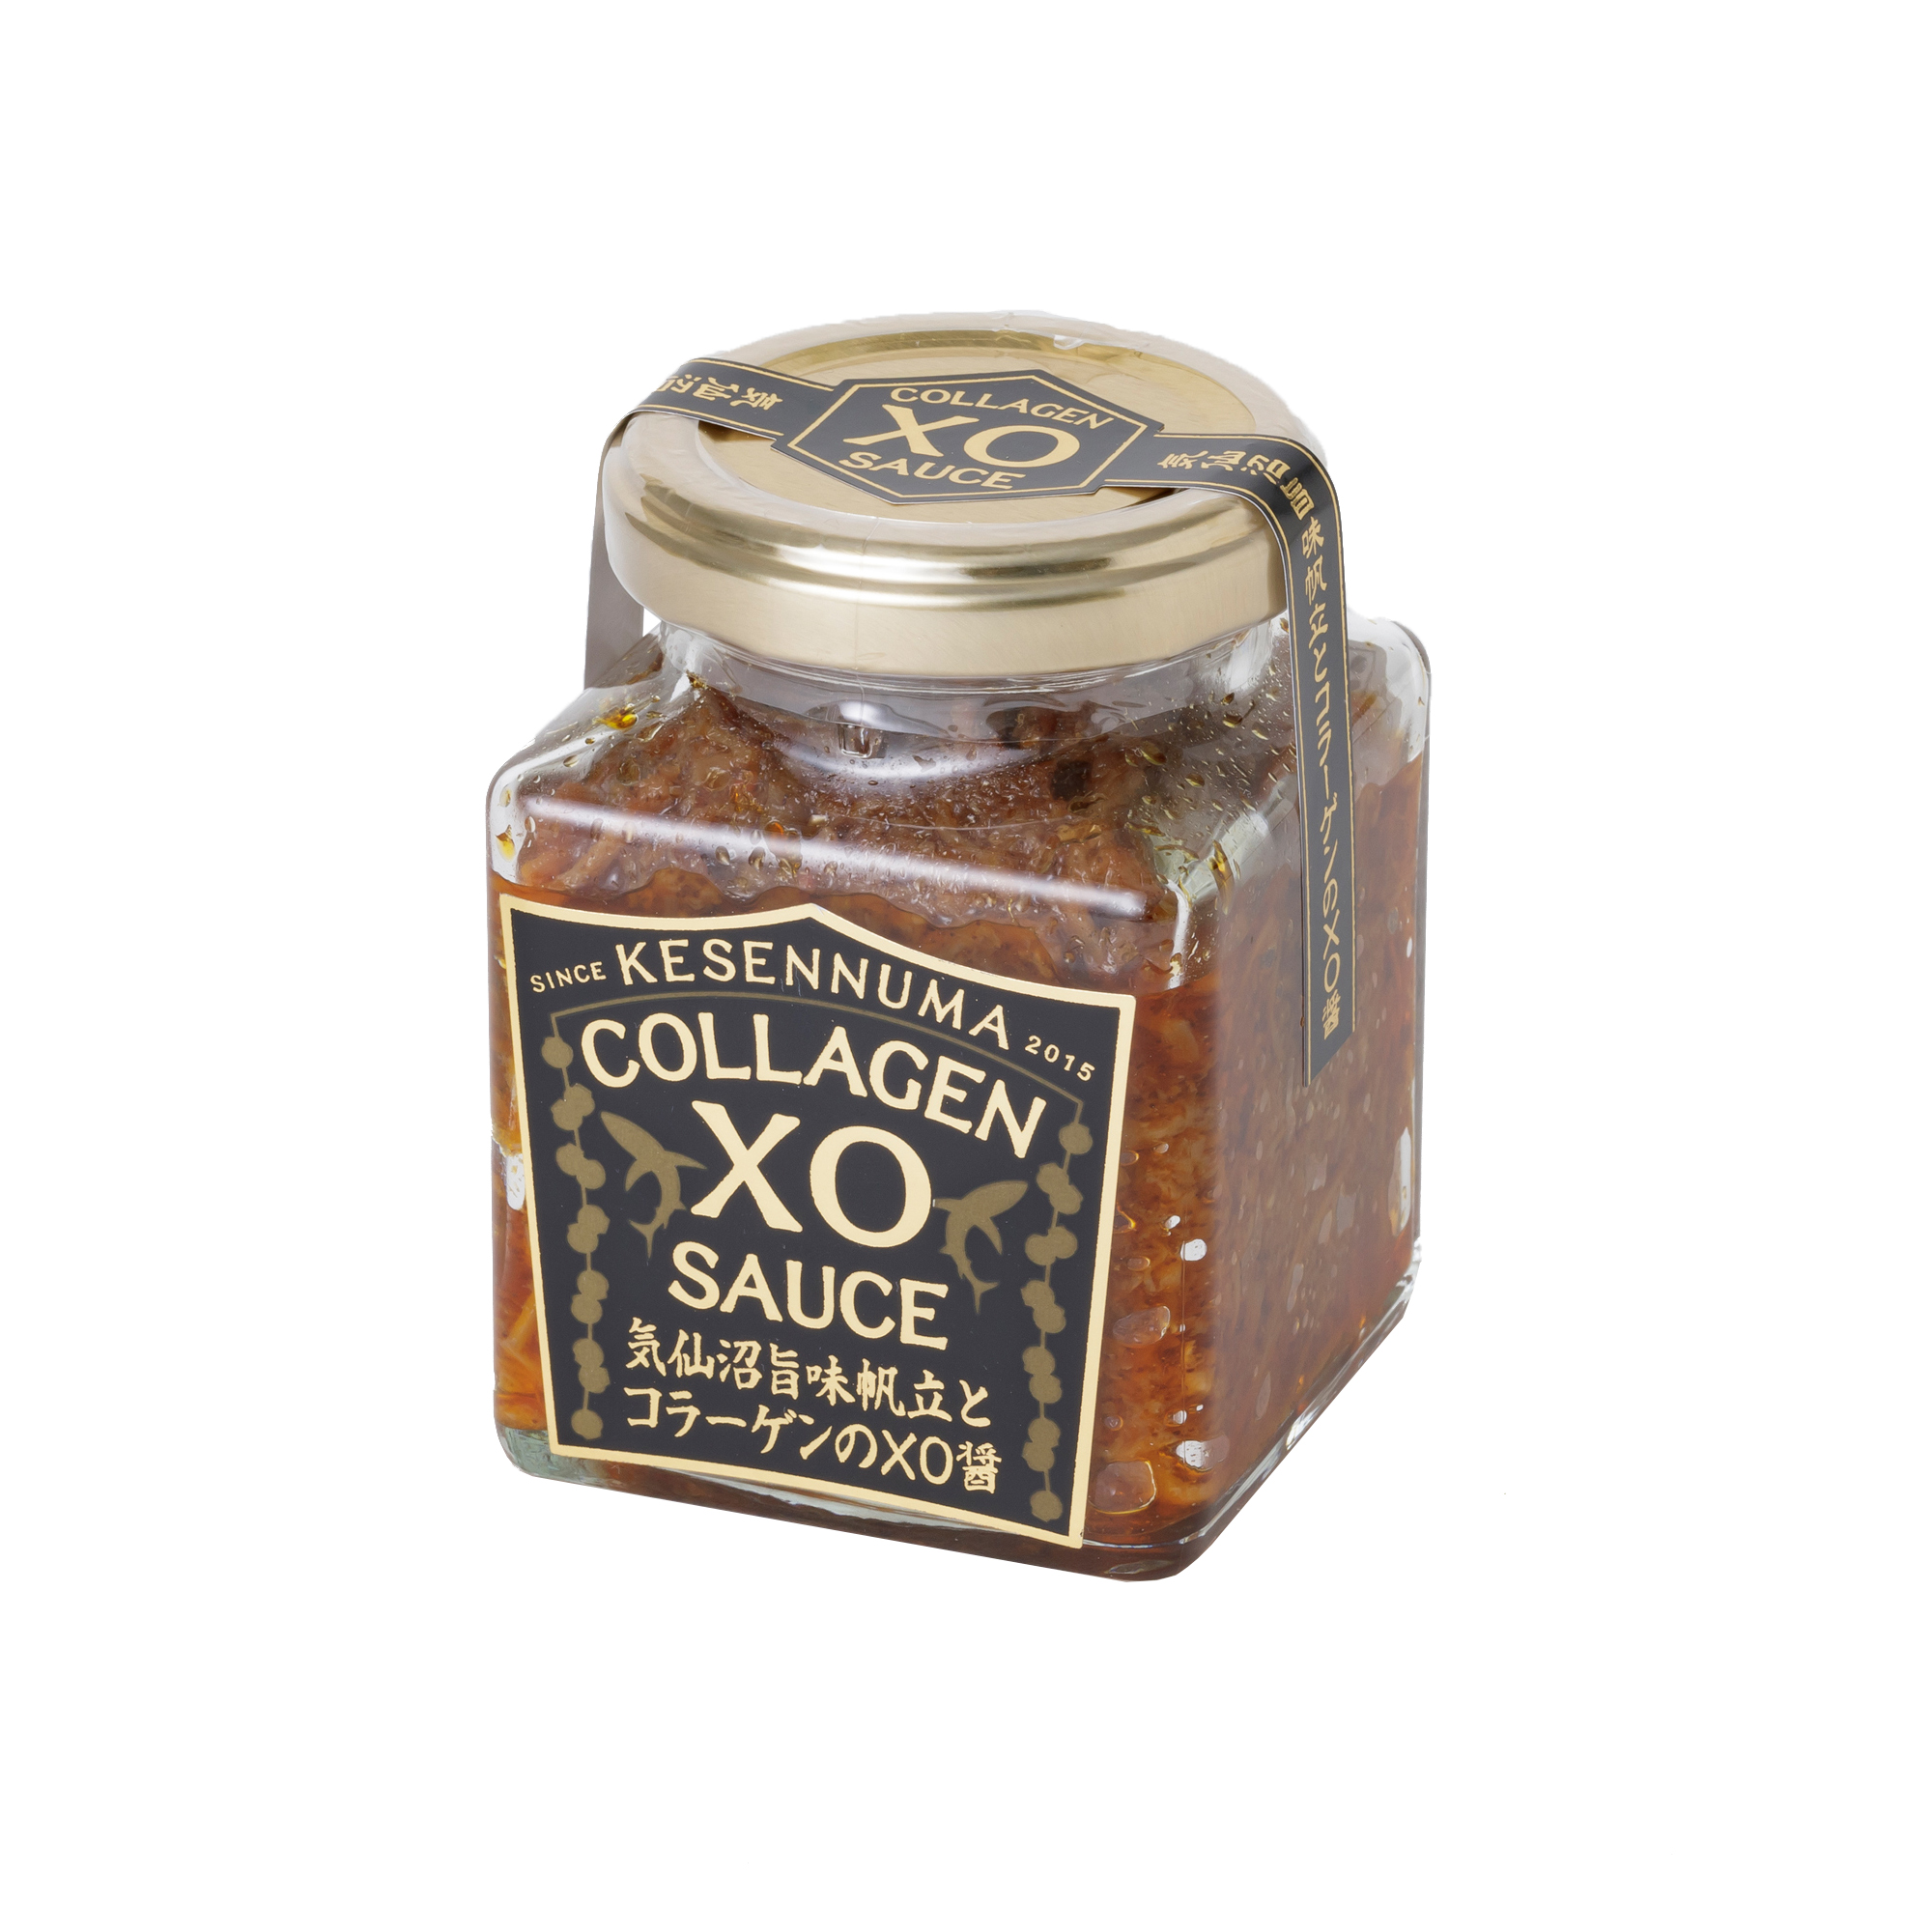 Ishiwata Shoten Kesennuma Collagen XO Sauce 145gm